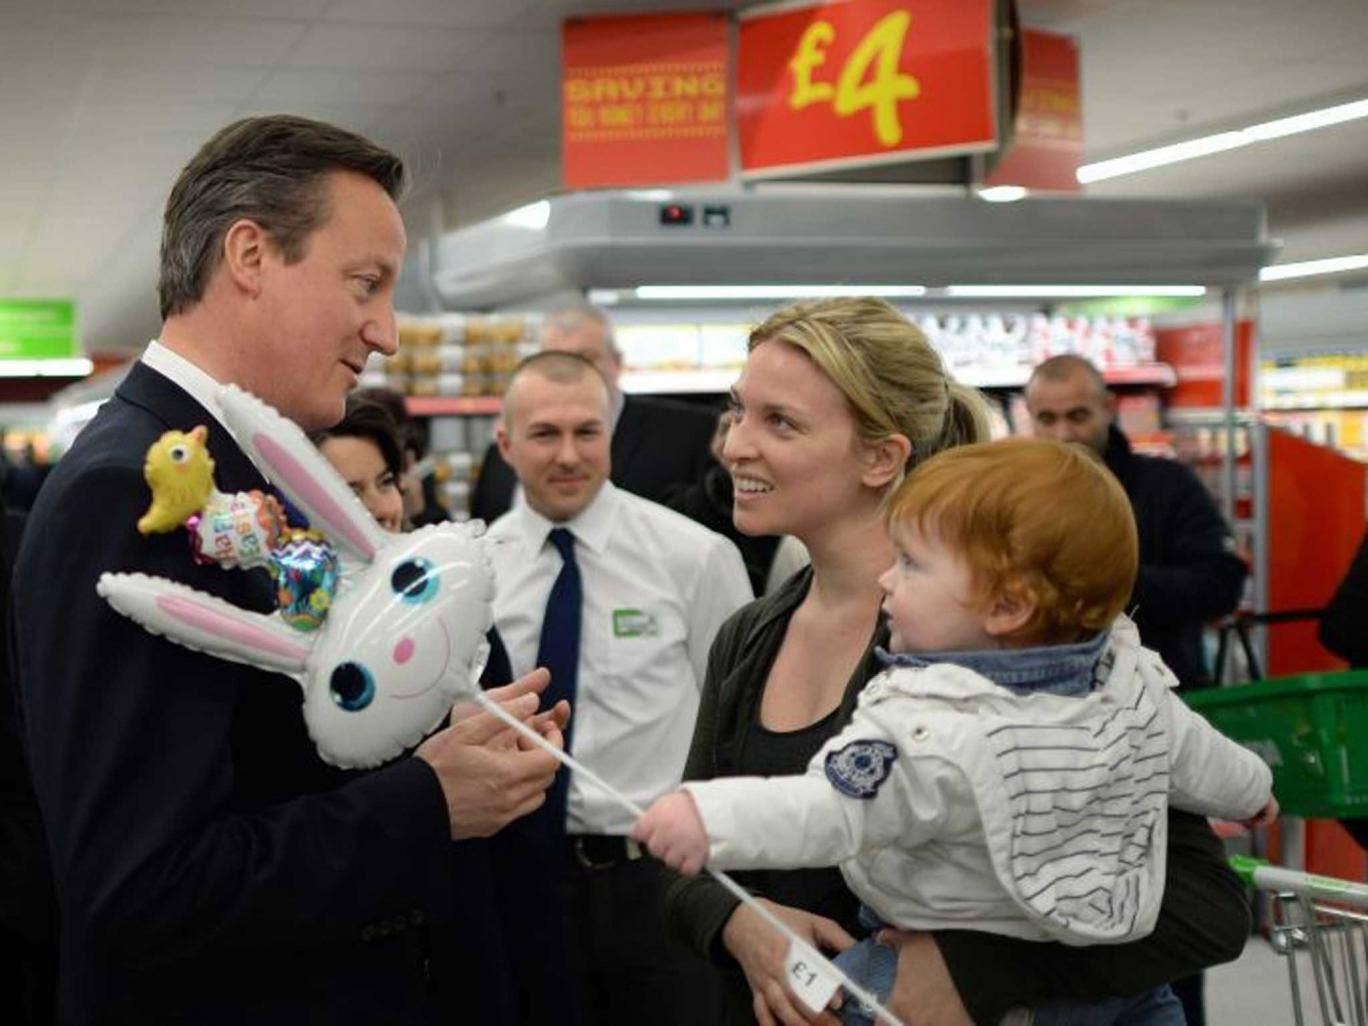 You talk, aisle listen: Cameron gets down with the kids, and their mums, at Asda